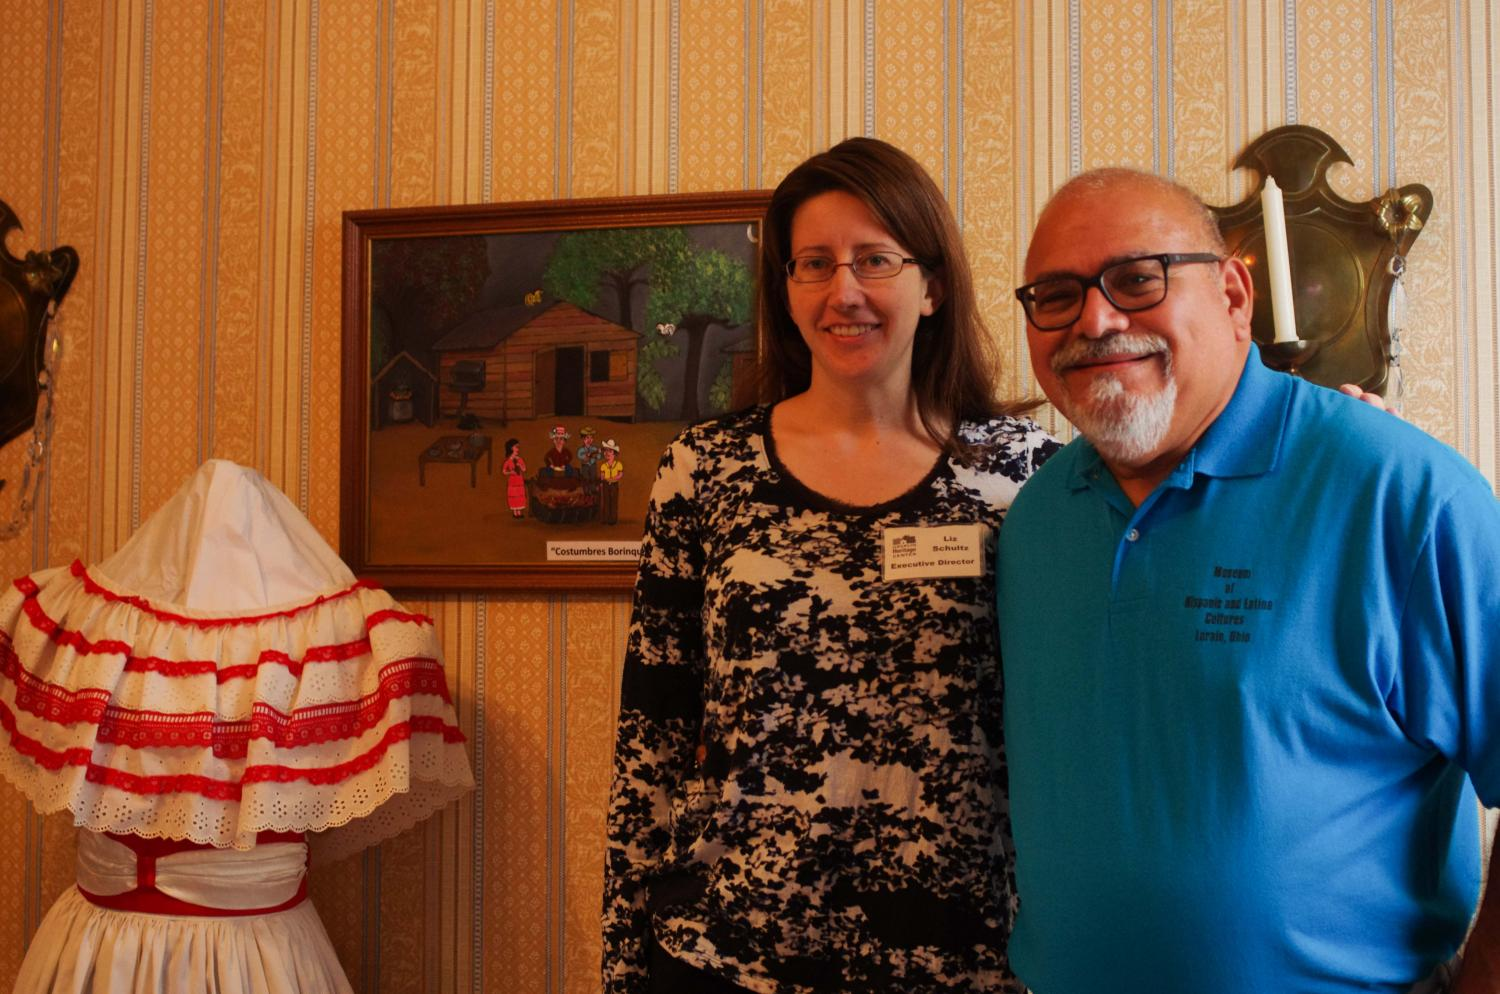 Liz Schultz (left), executive director of the Oberlin Heritage Center, and Guillermo Arriaga, president and director of the Museum of Hispanic and Latino Cultures of Lorain, have collaboratively curated an exhibition on Hispanic and Latino culture. that will be open to the public in Monroe House through September.